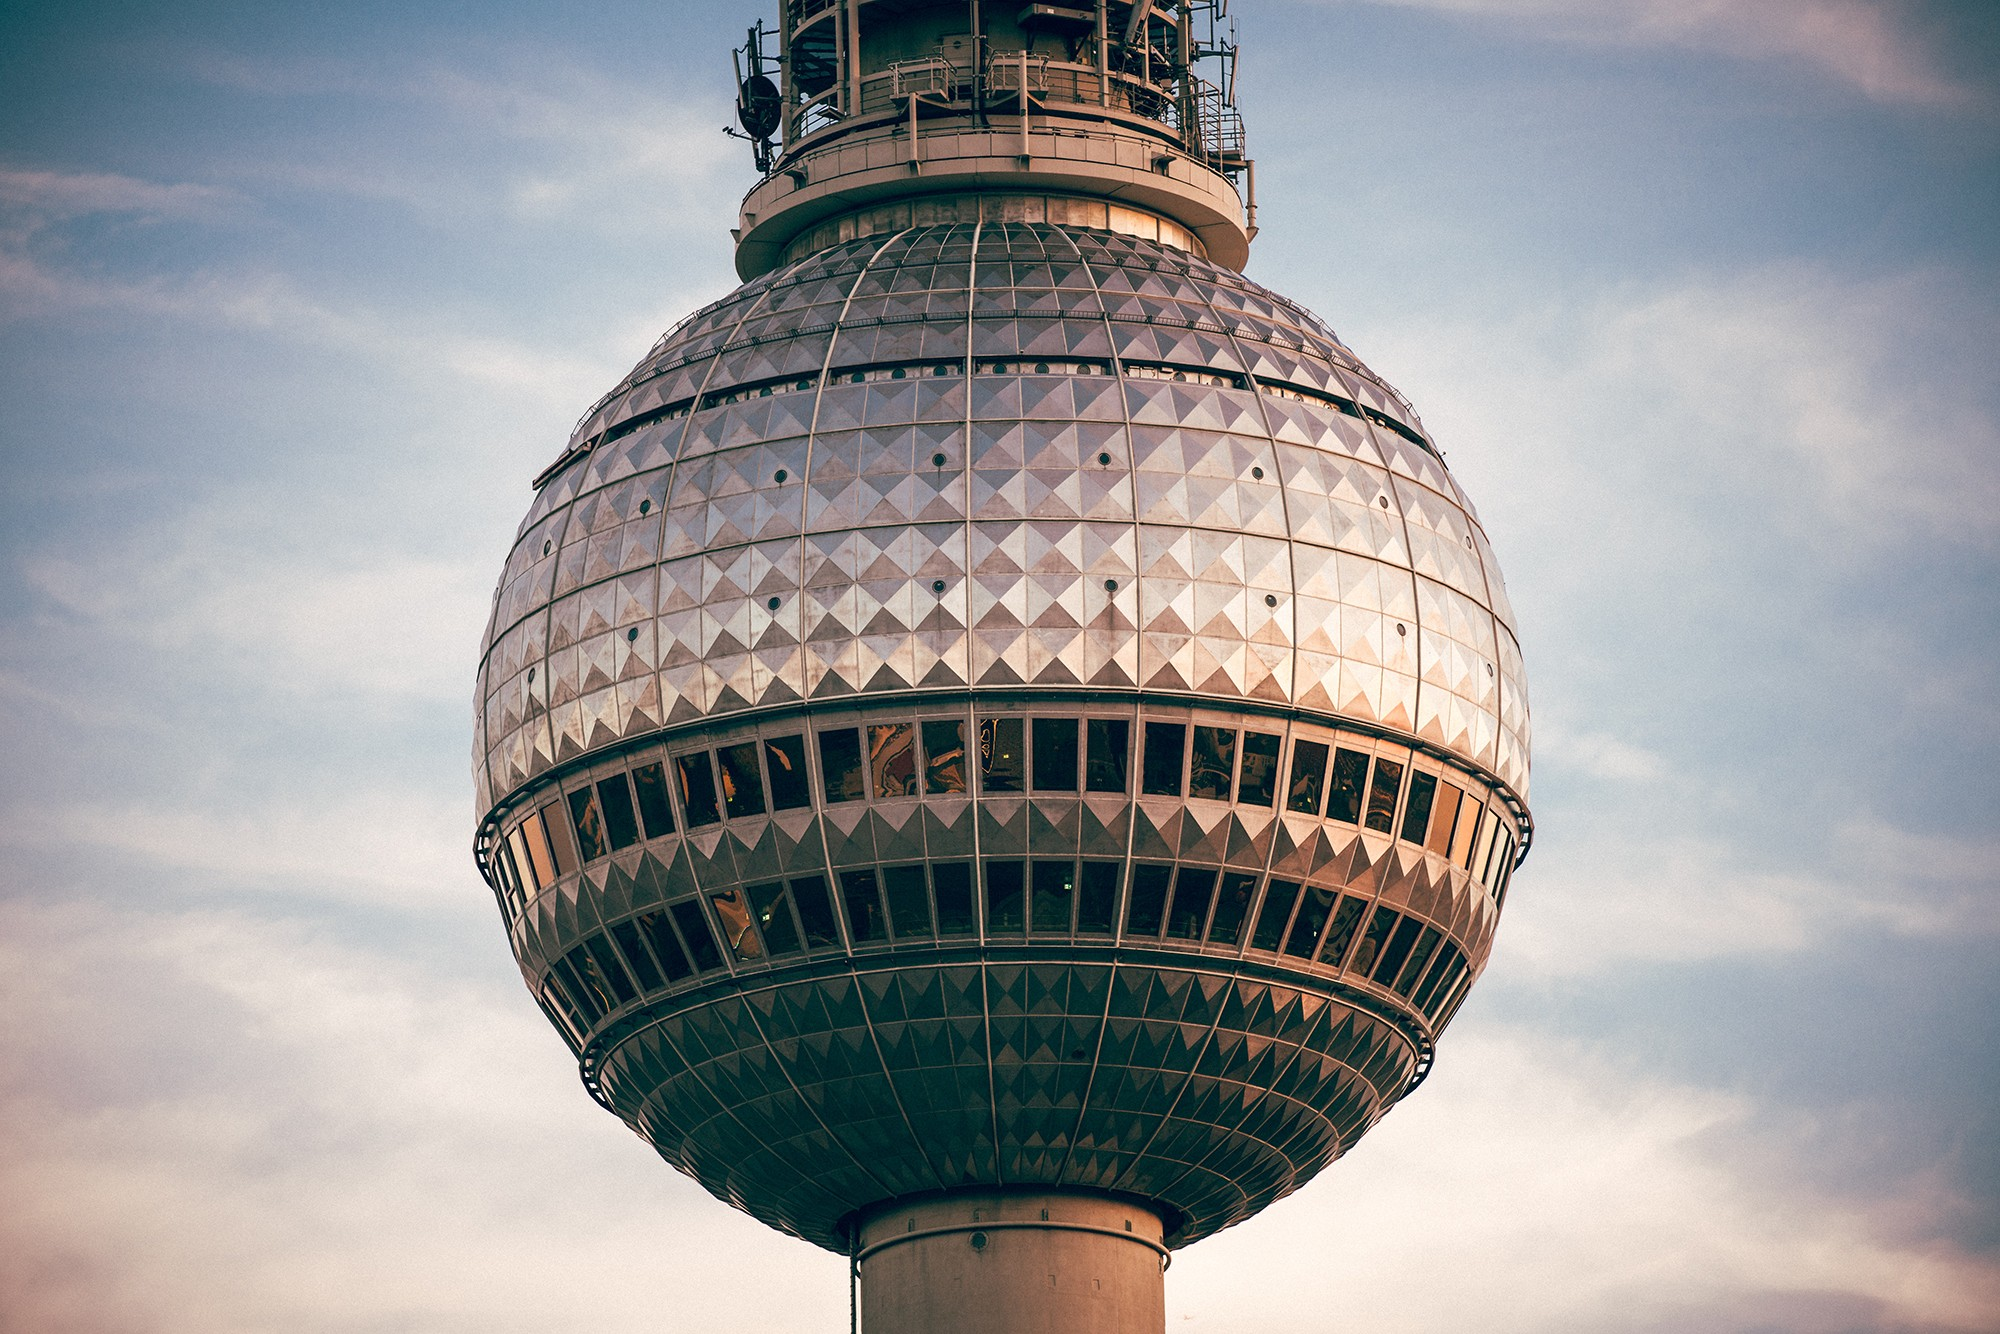 Close up of the Fernsehturm (TV Tower) in Berlin